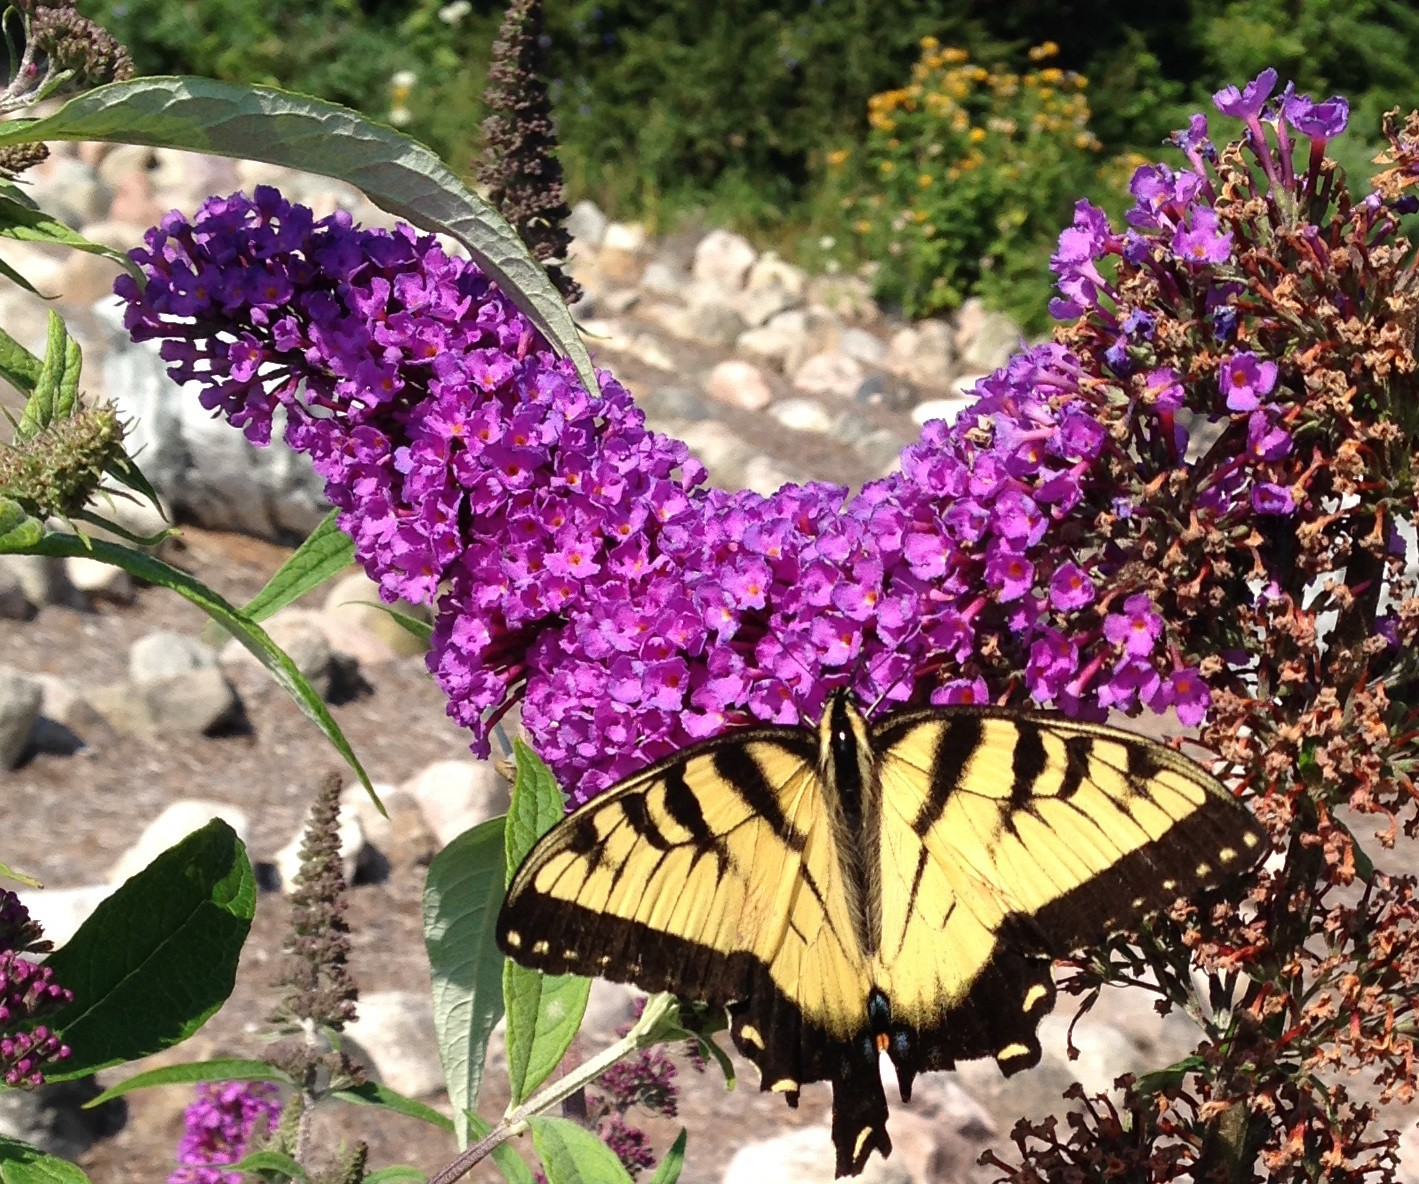 Day 134 Healing And The Butterfly With No Tail Victory Garden Day By Day